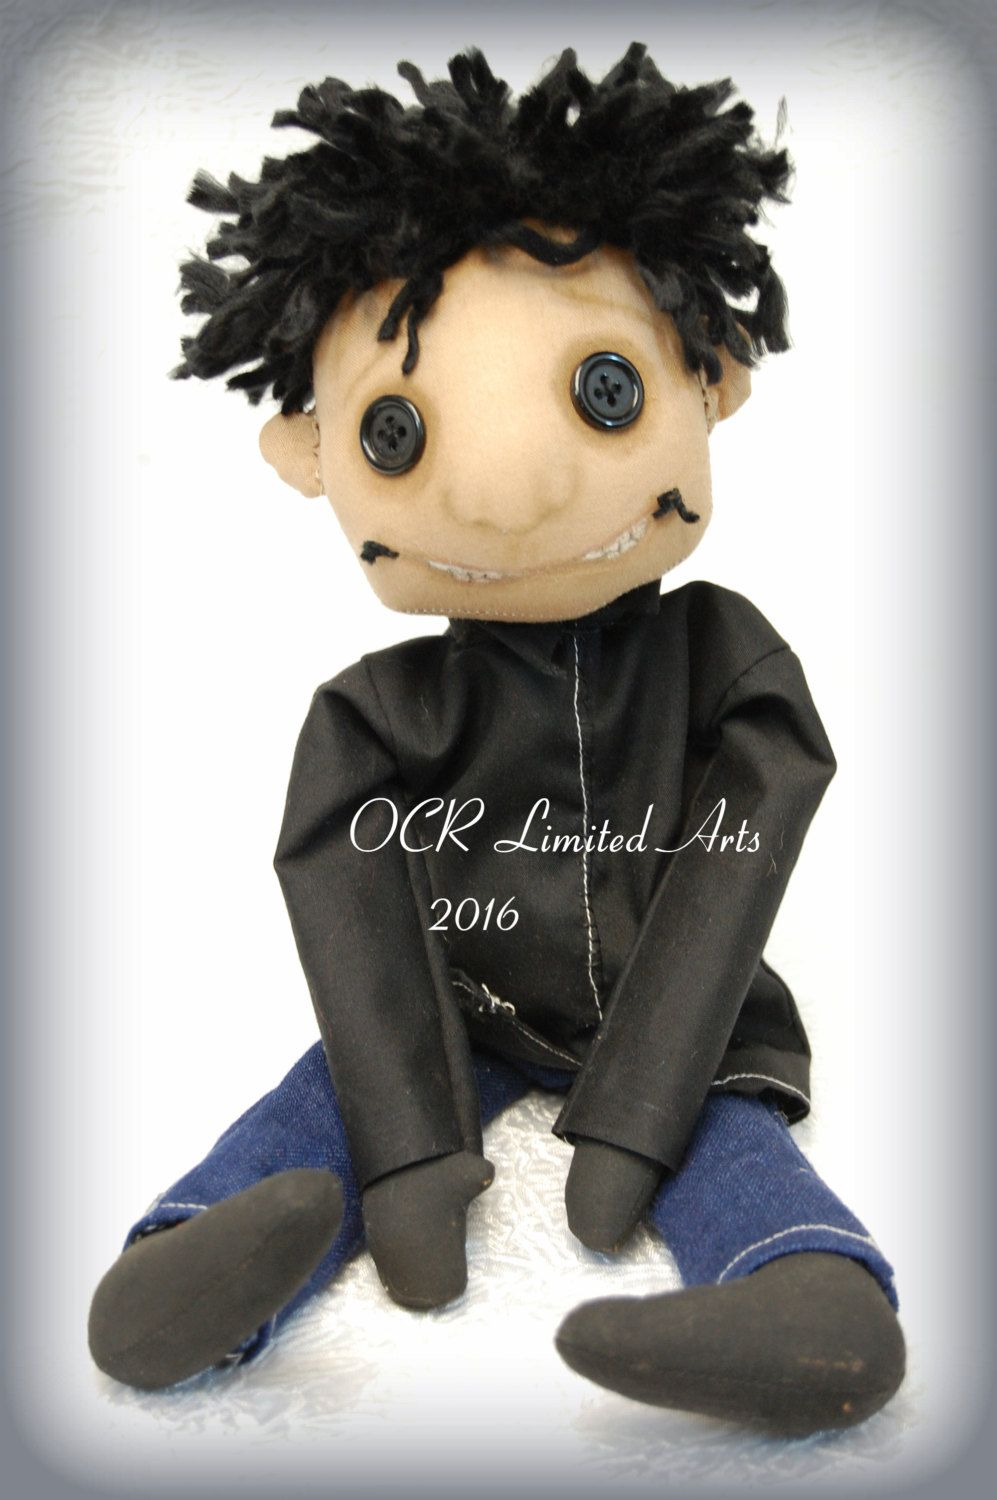 The Other Wybie Button Eye Doll Coraline Inspired Creepy Cute Ooak Handmade Art Doll Cloth Doll Collectible G Art Dolls Handmade Art Dolls Cloth Gothic Dolls